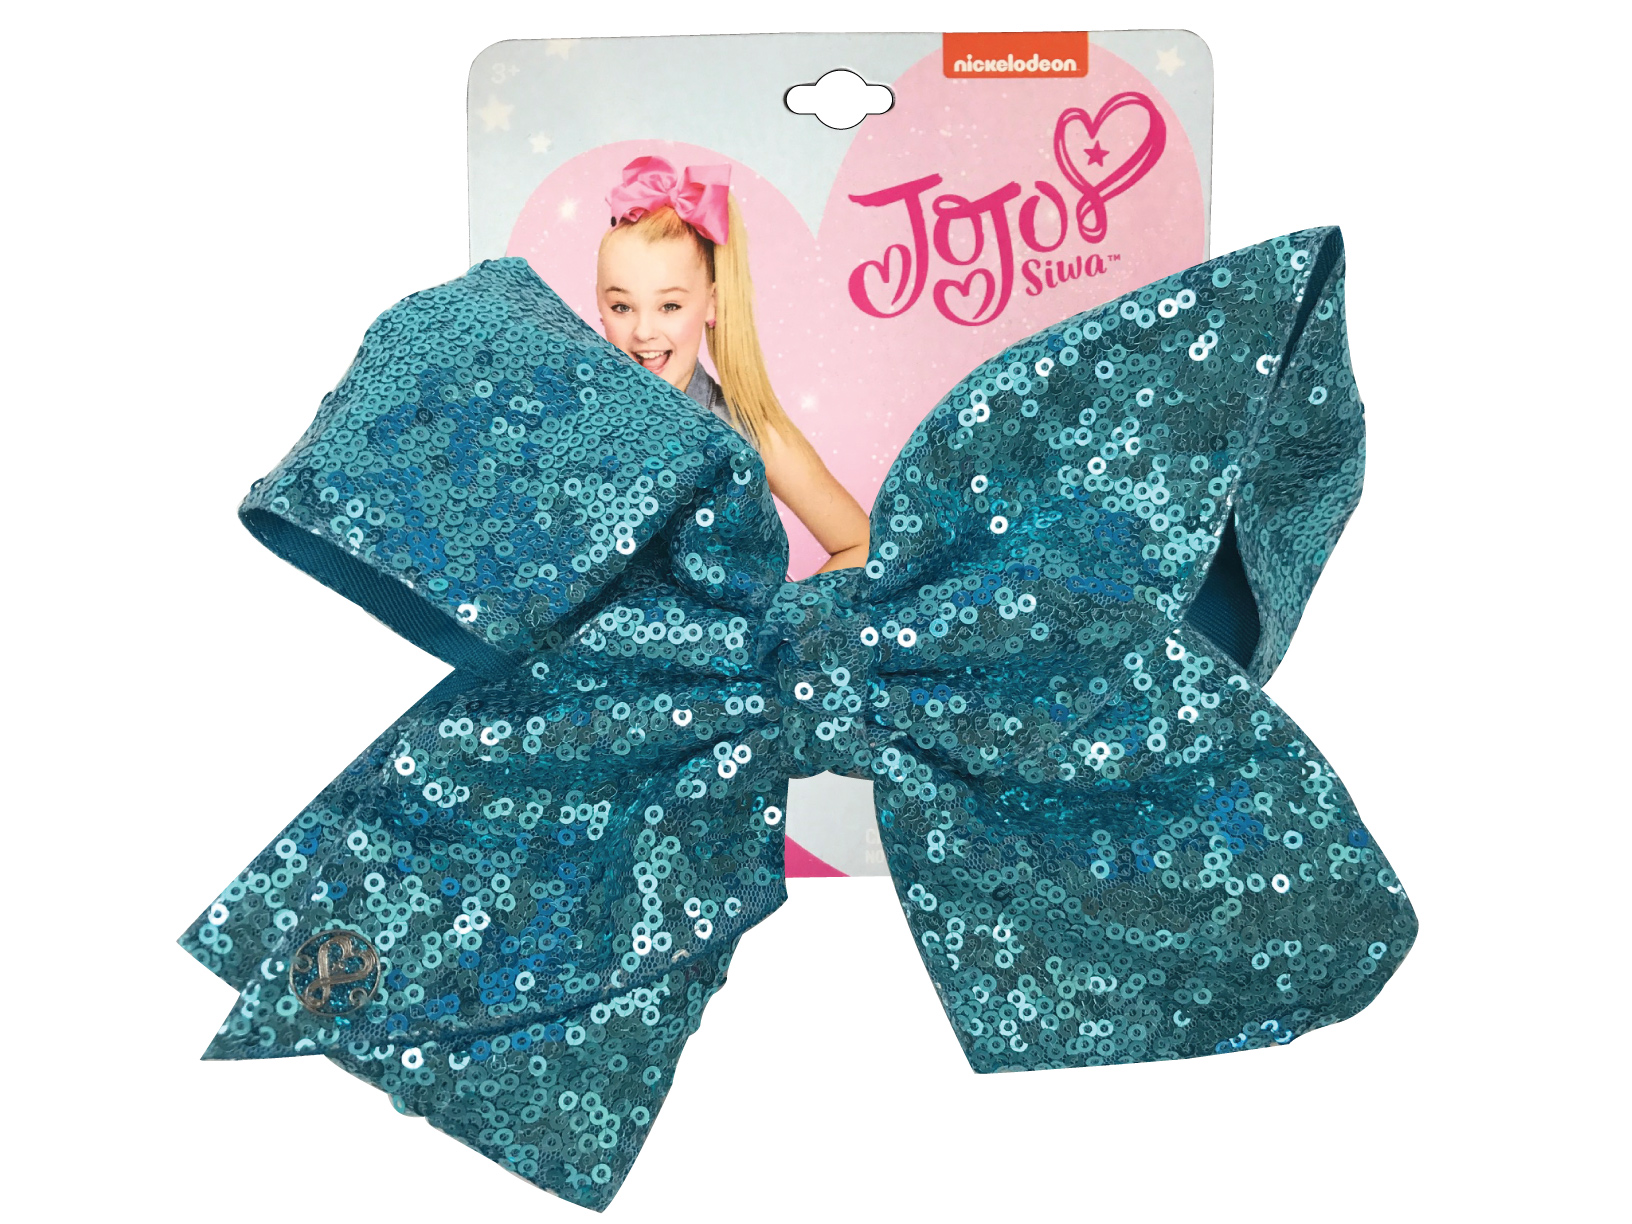 JoJo Siwa Large Cheer Hair Bow (Turquoise Sequined)